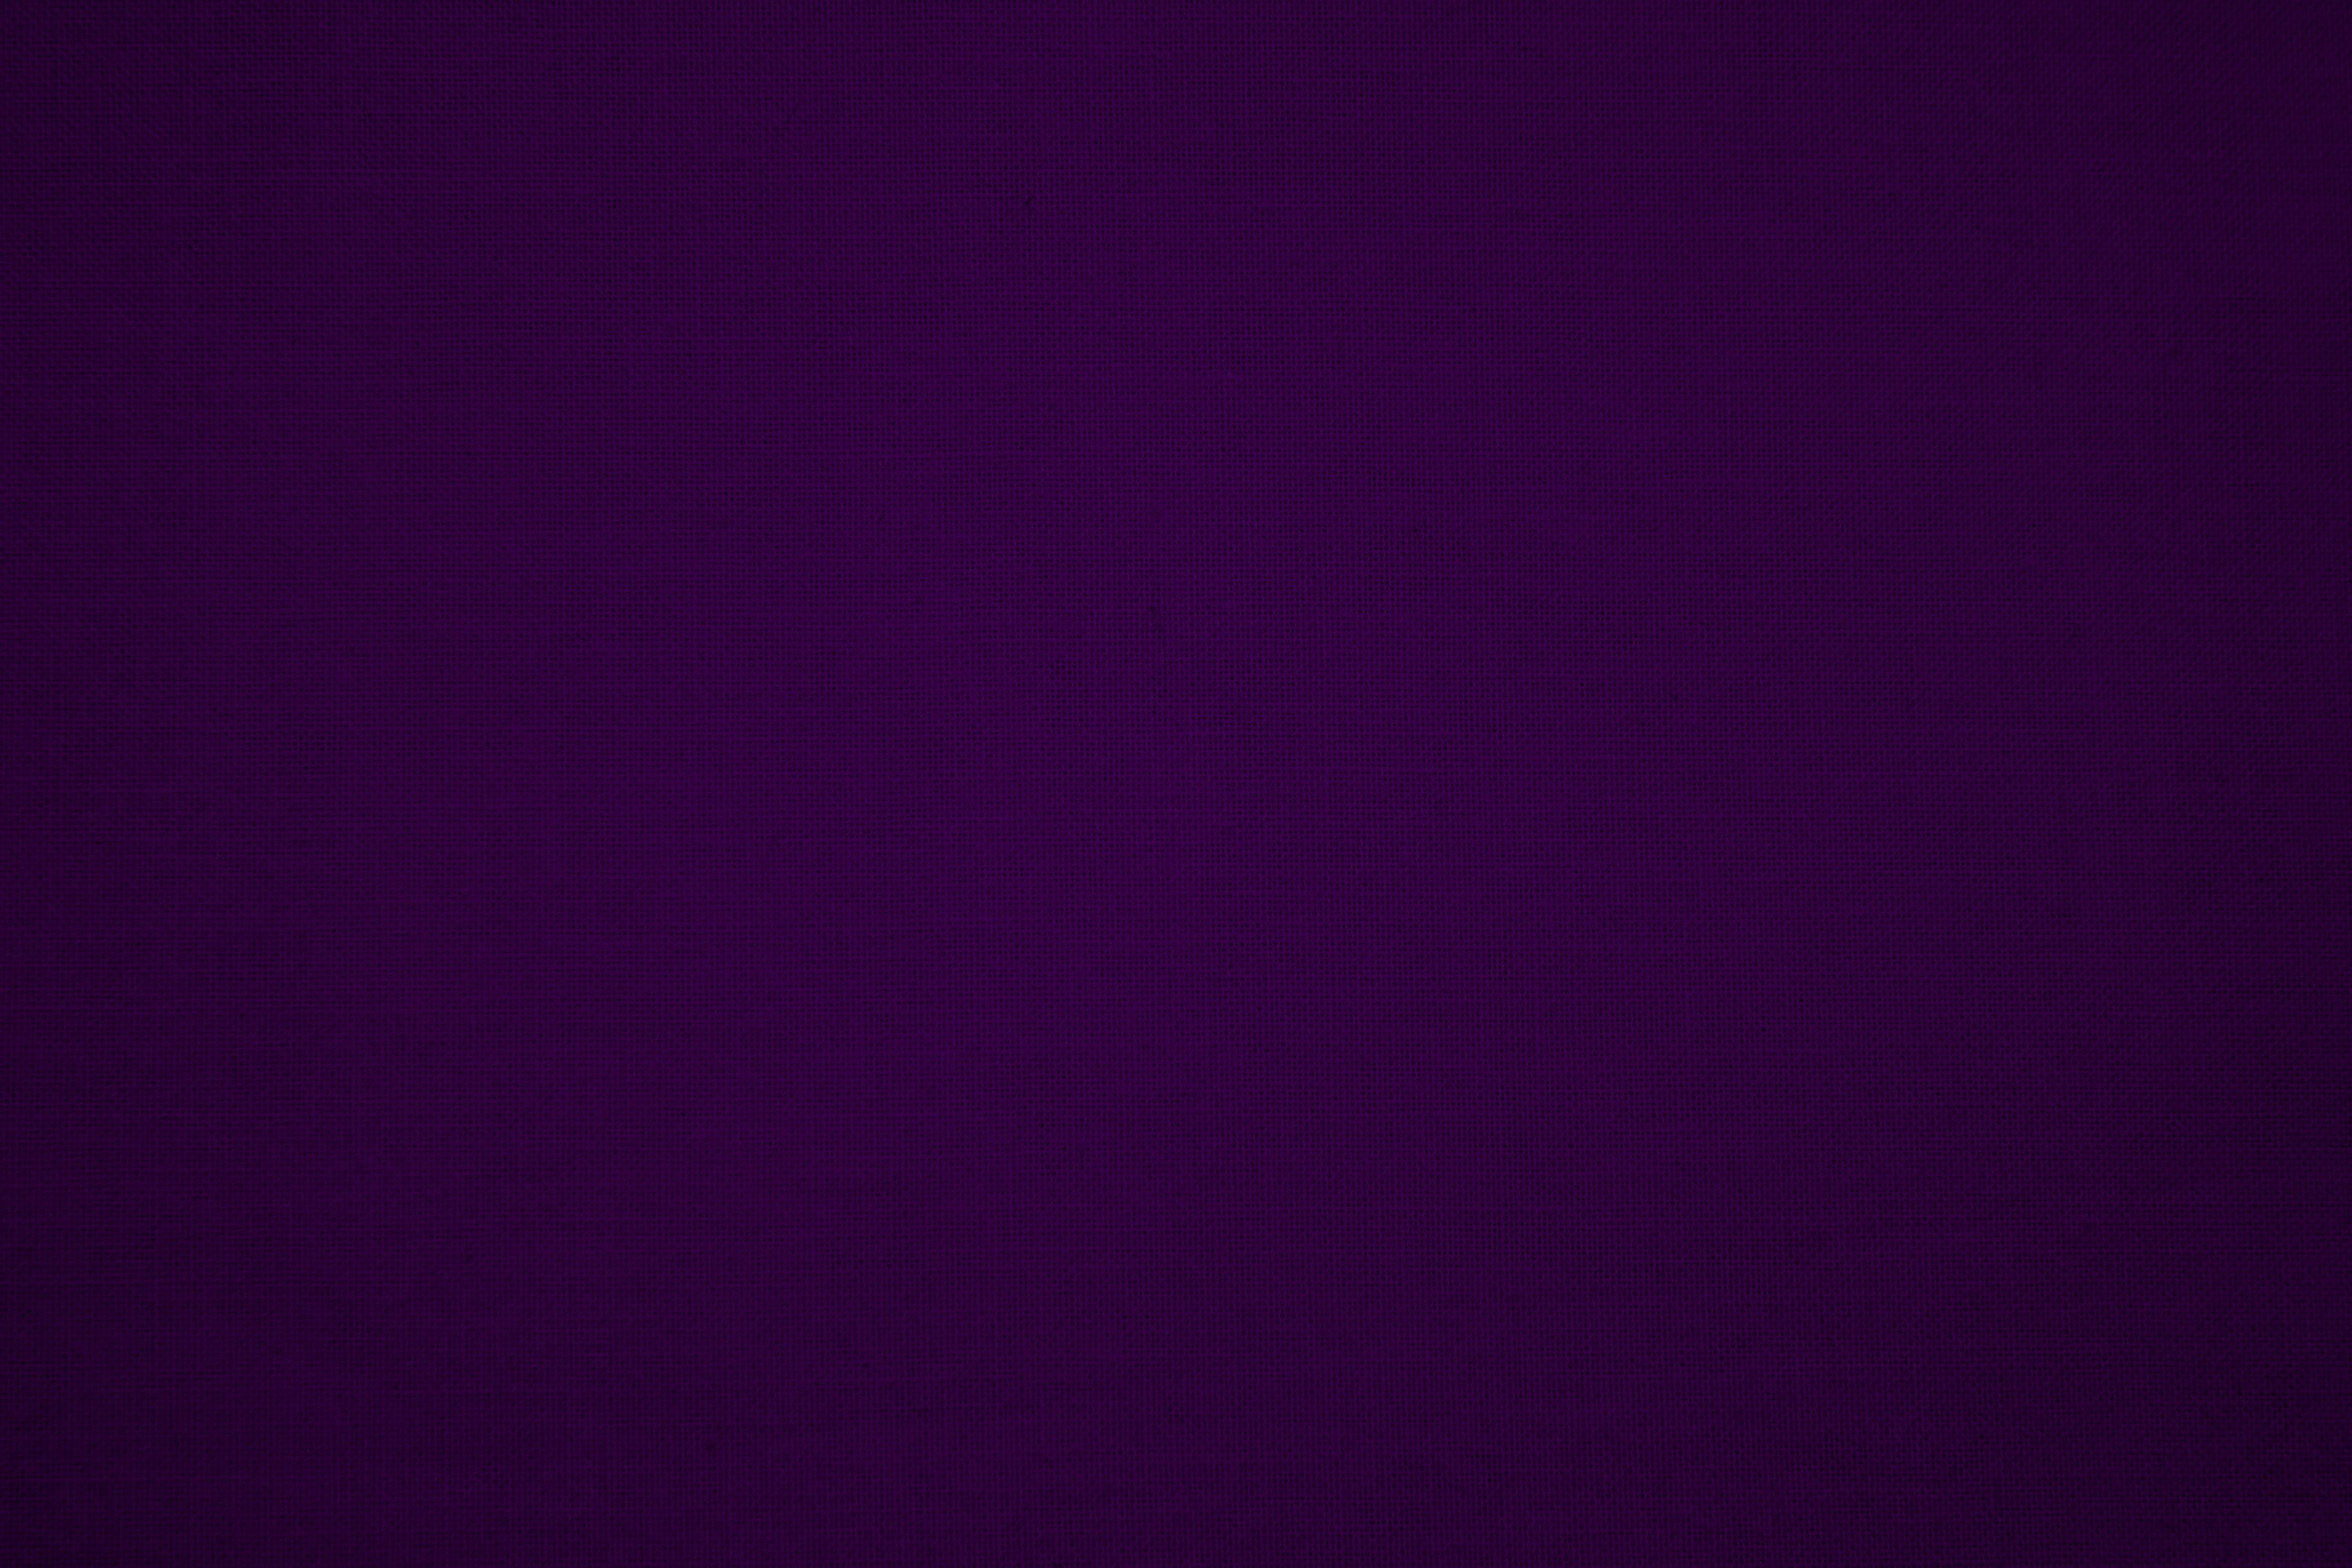 deep purple textured wallpaper - photo #17